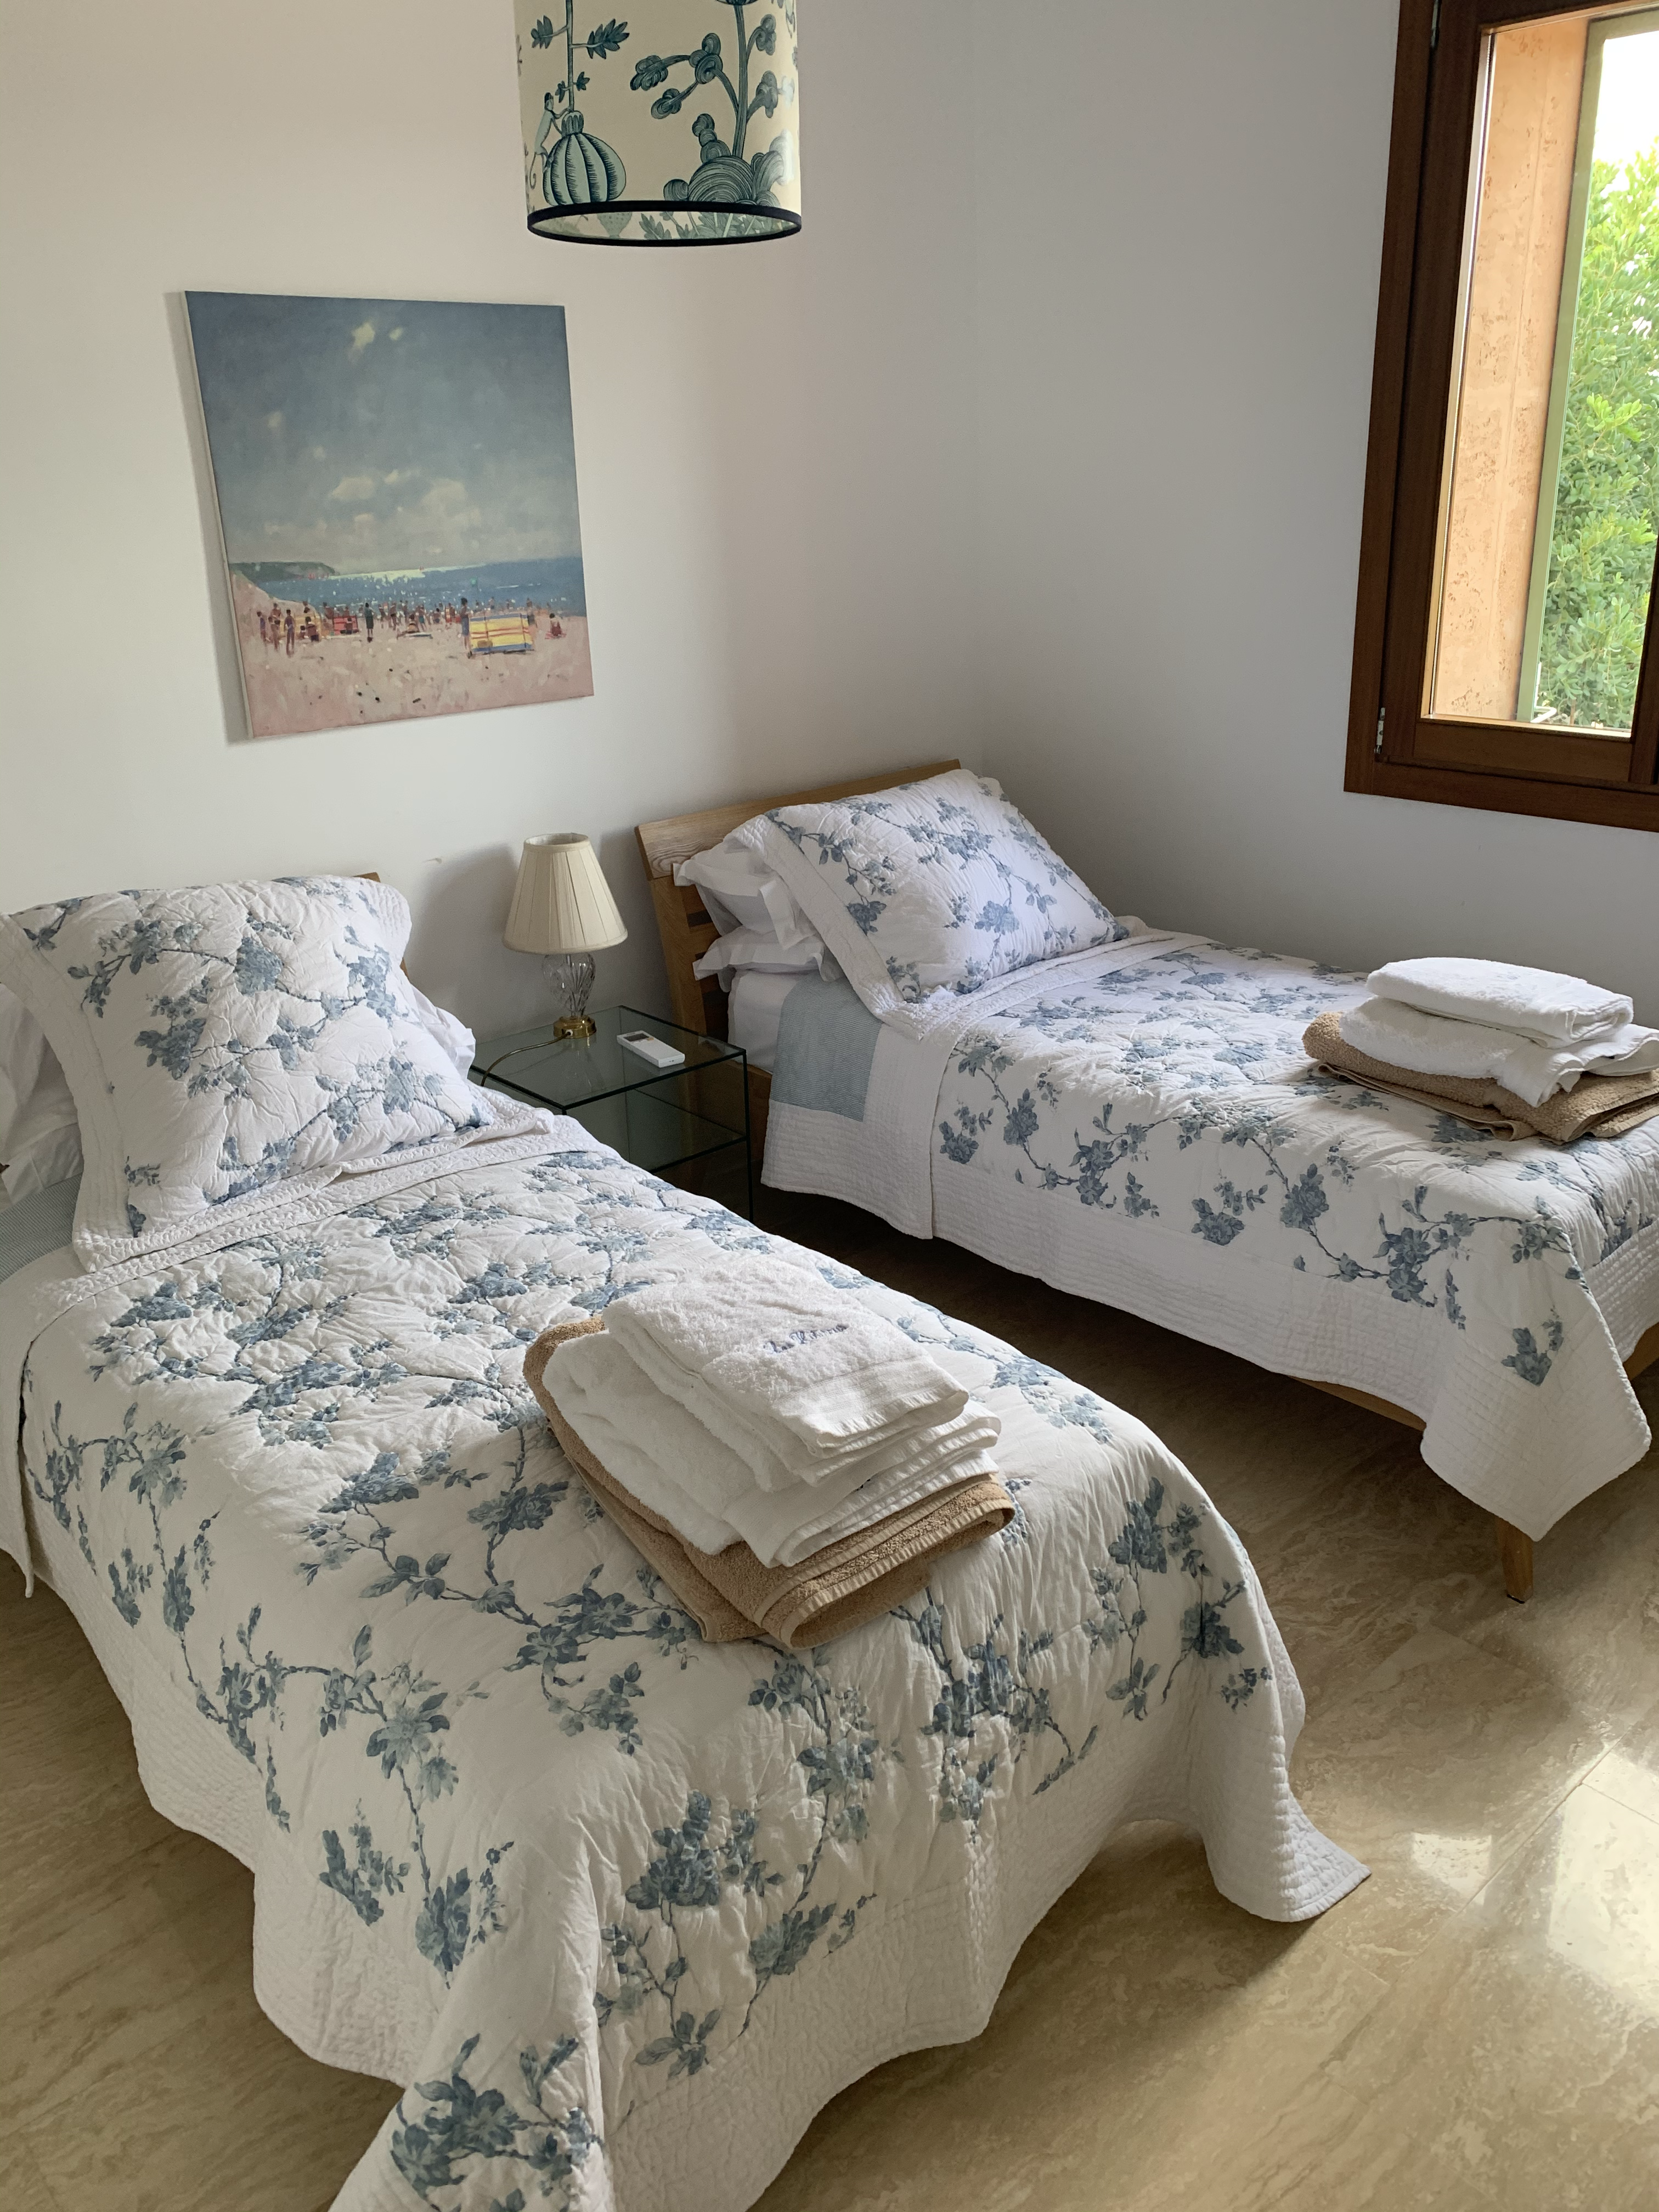 Double bedroom 4 with two single beds